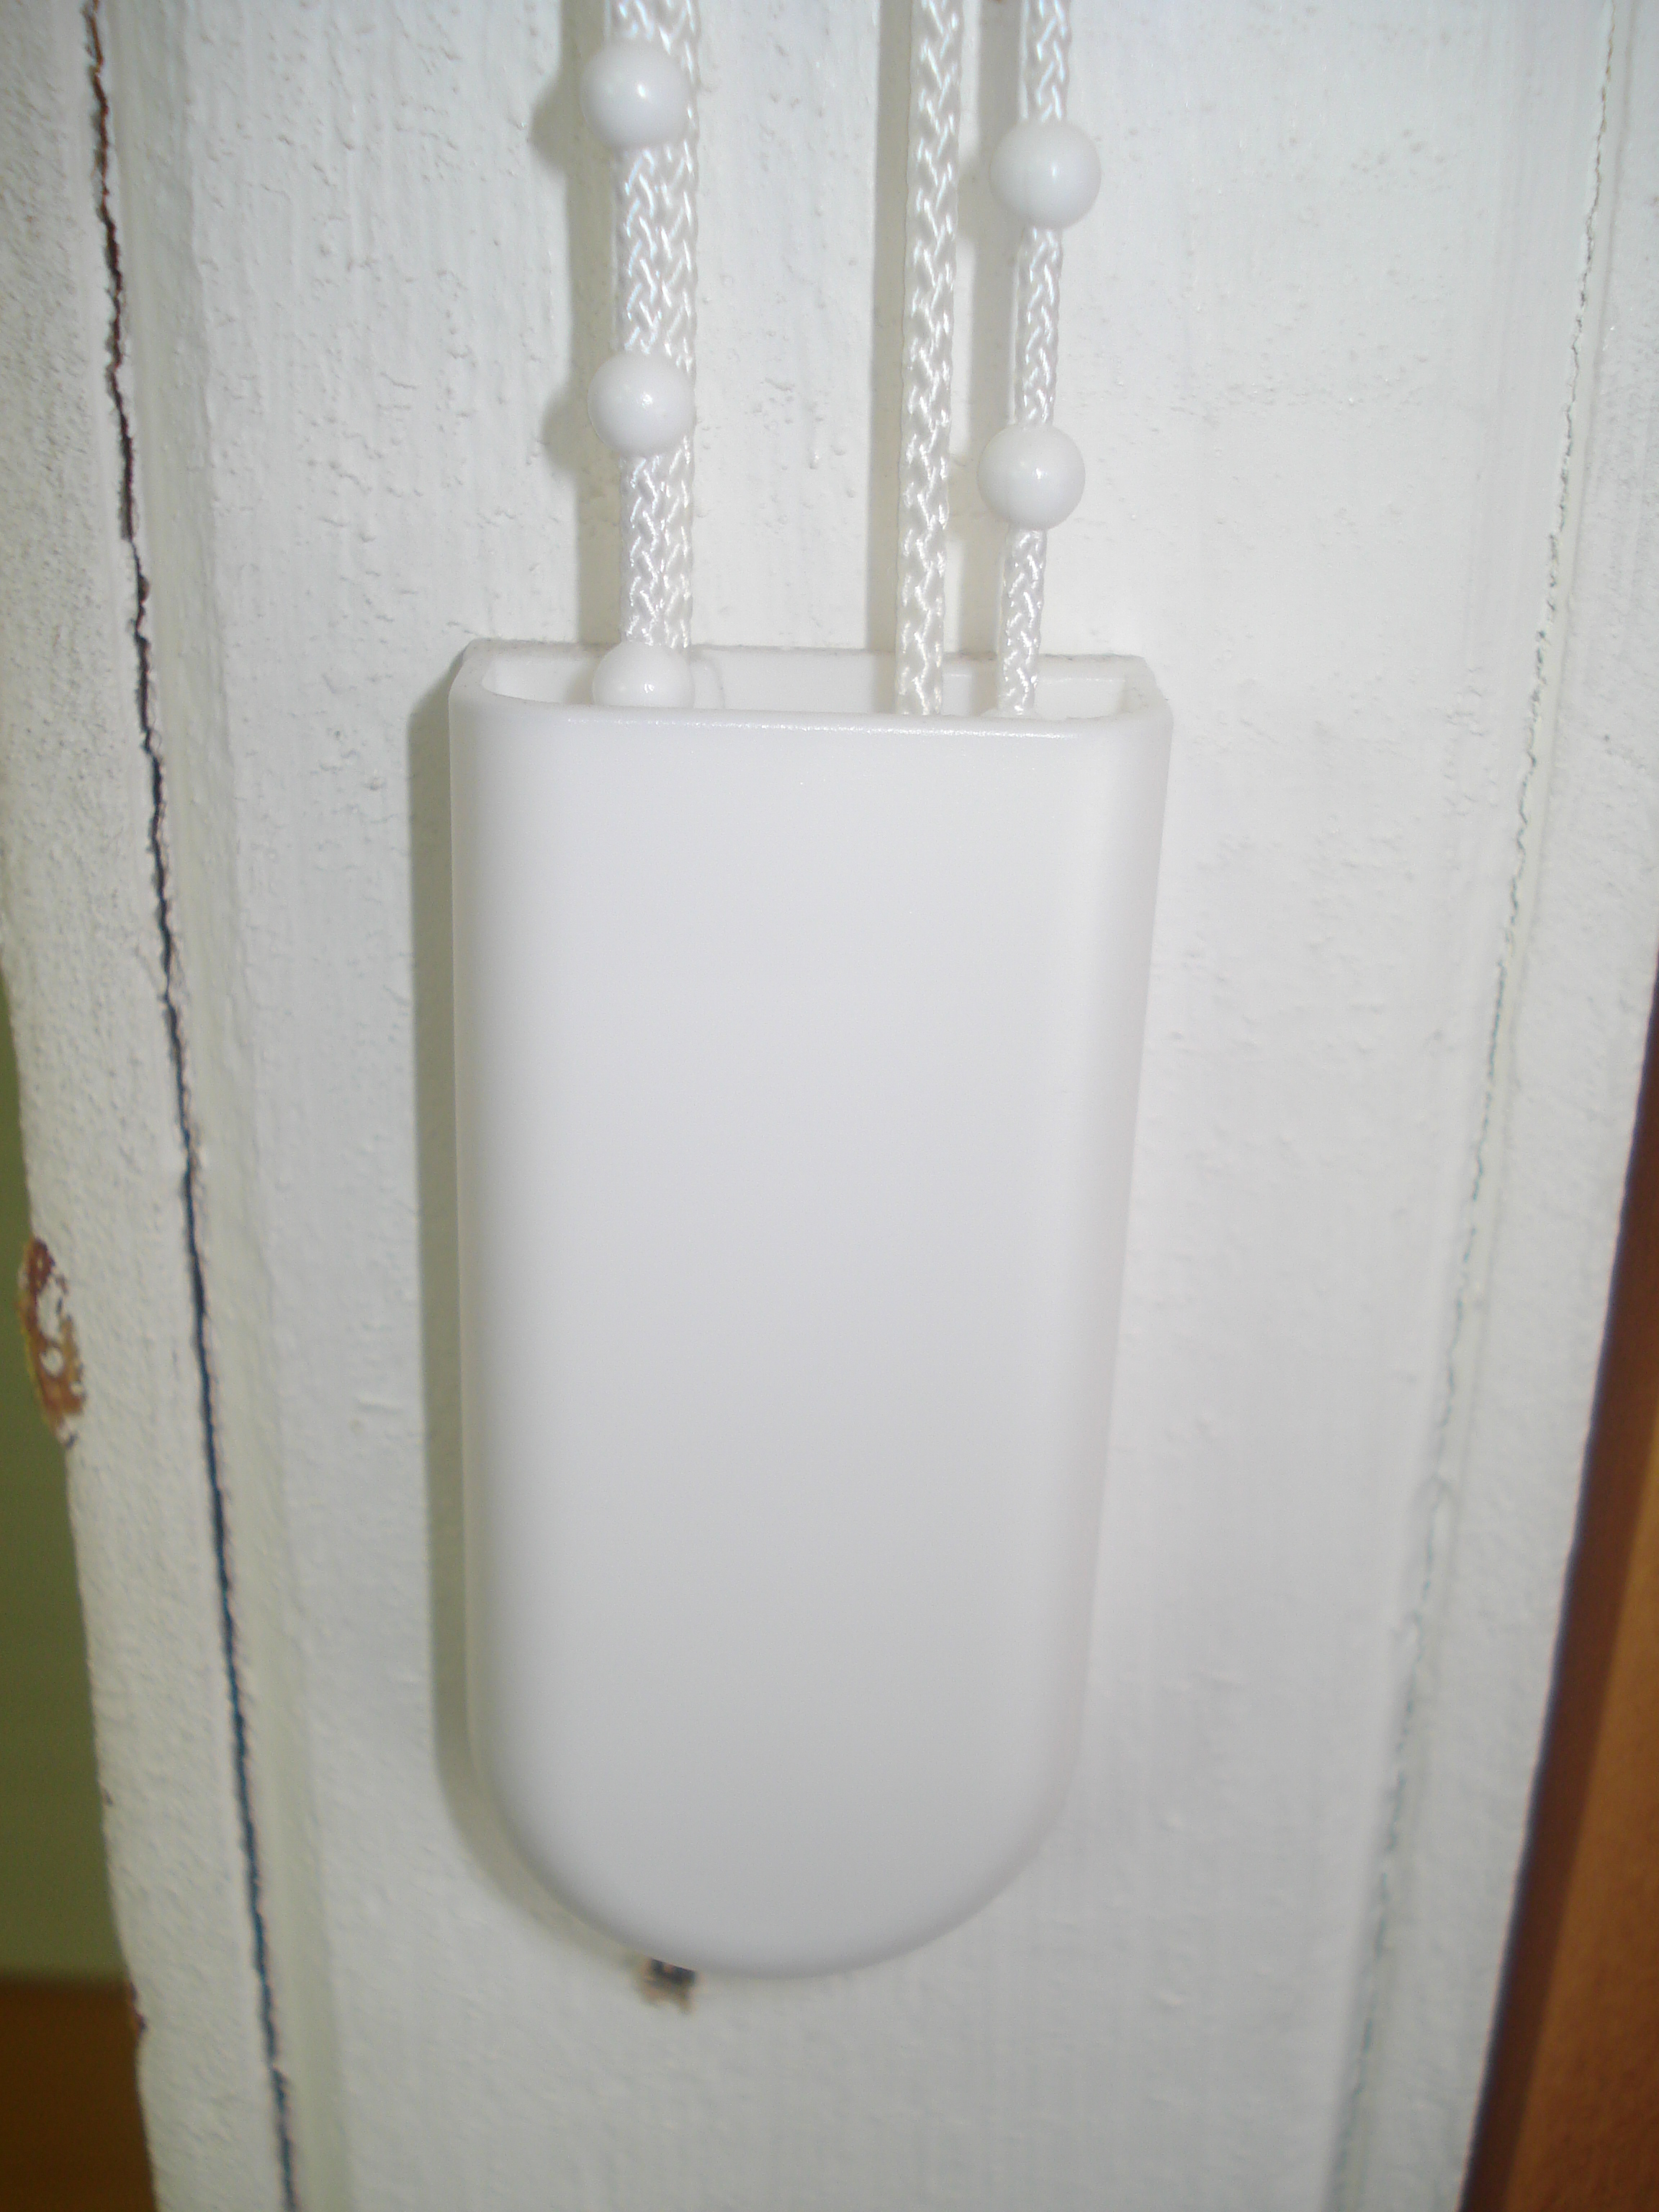 Lh881 Cord Chain Pulley Box Double White Qty1 Blinds